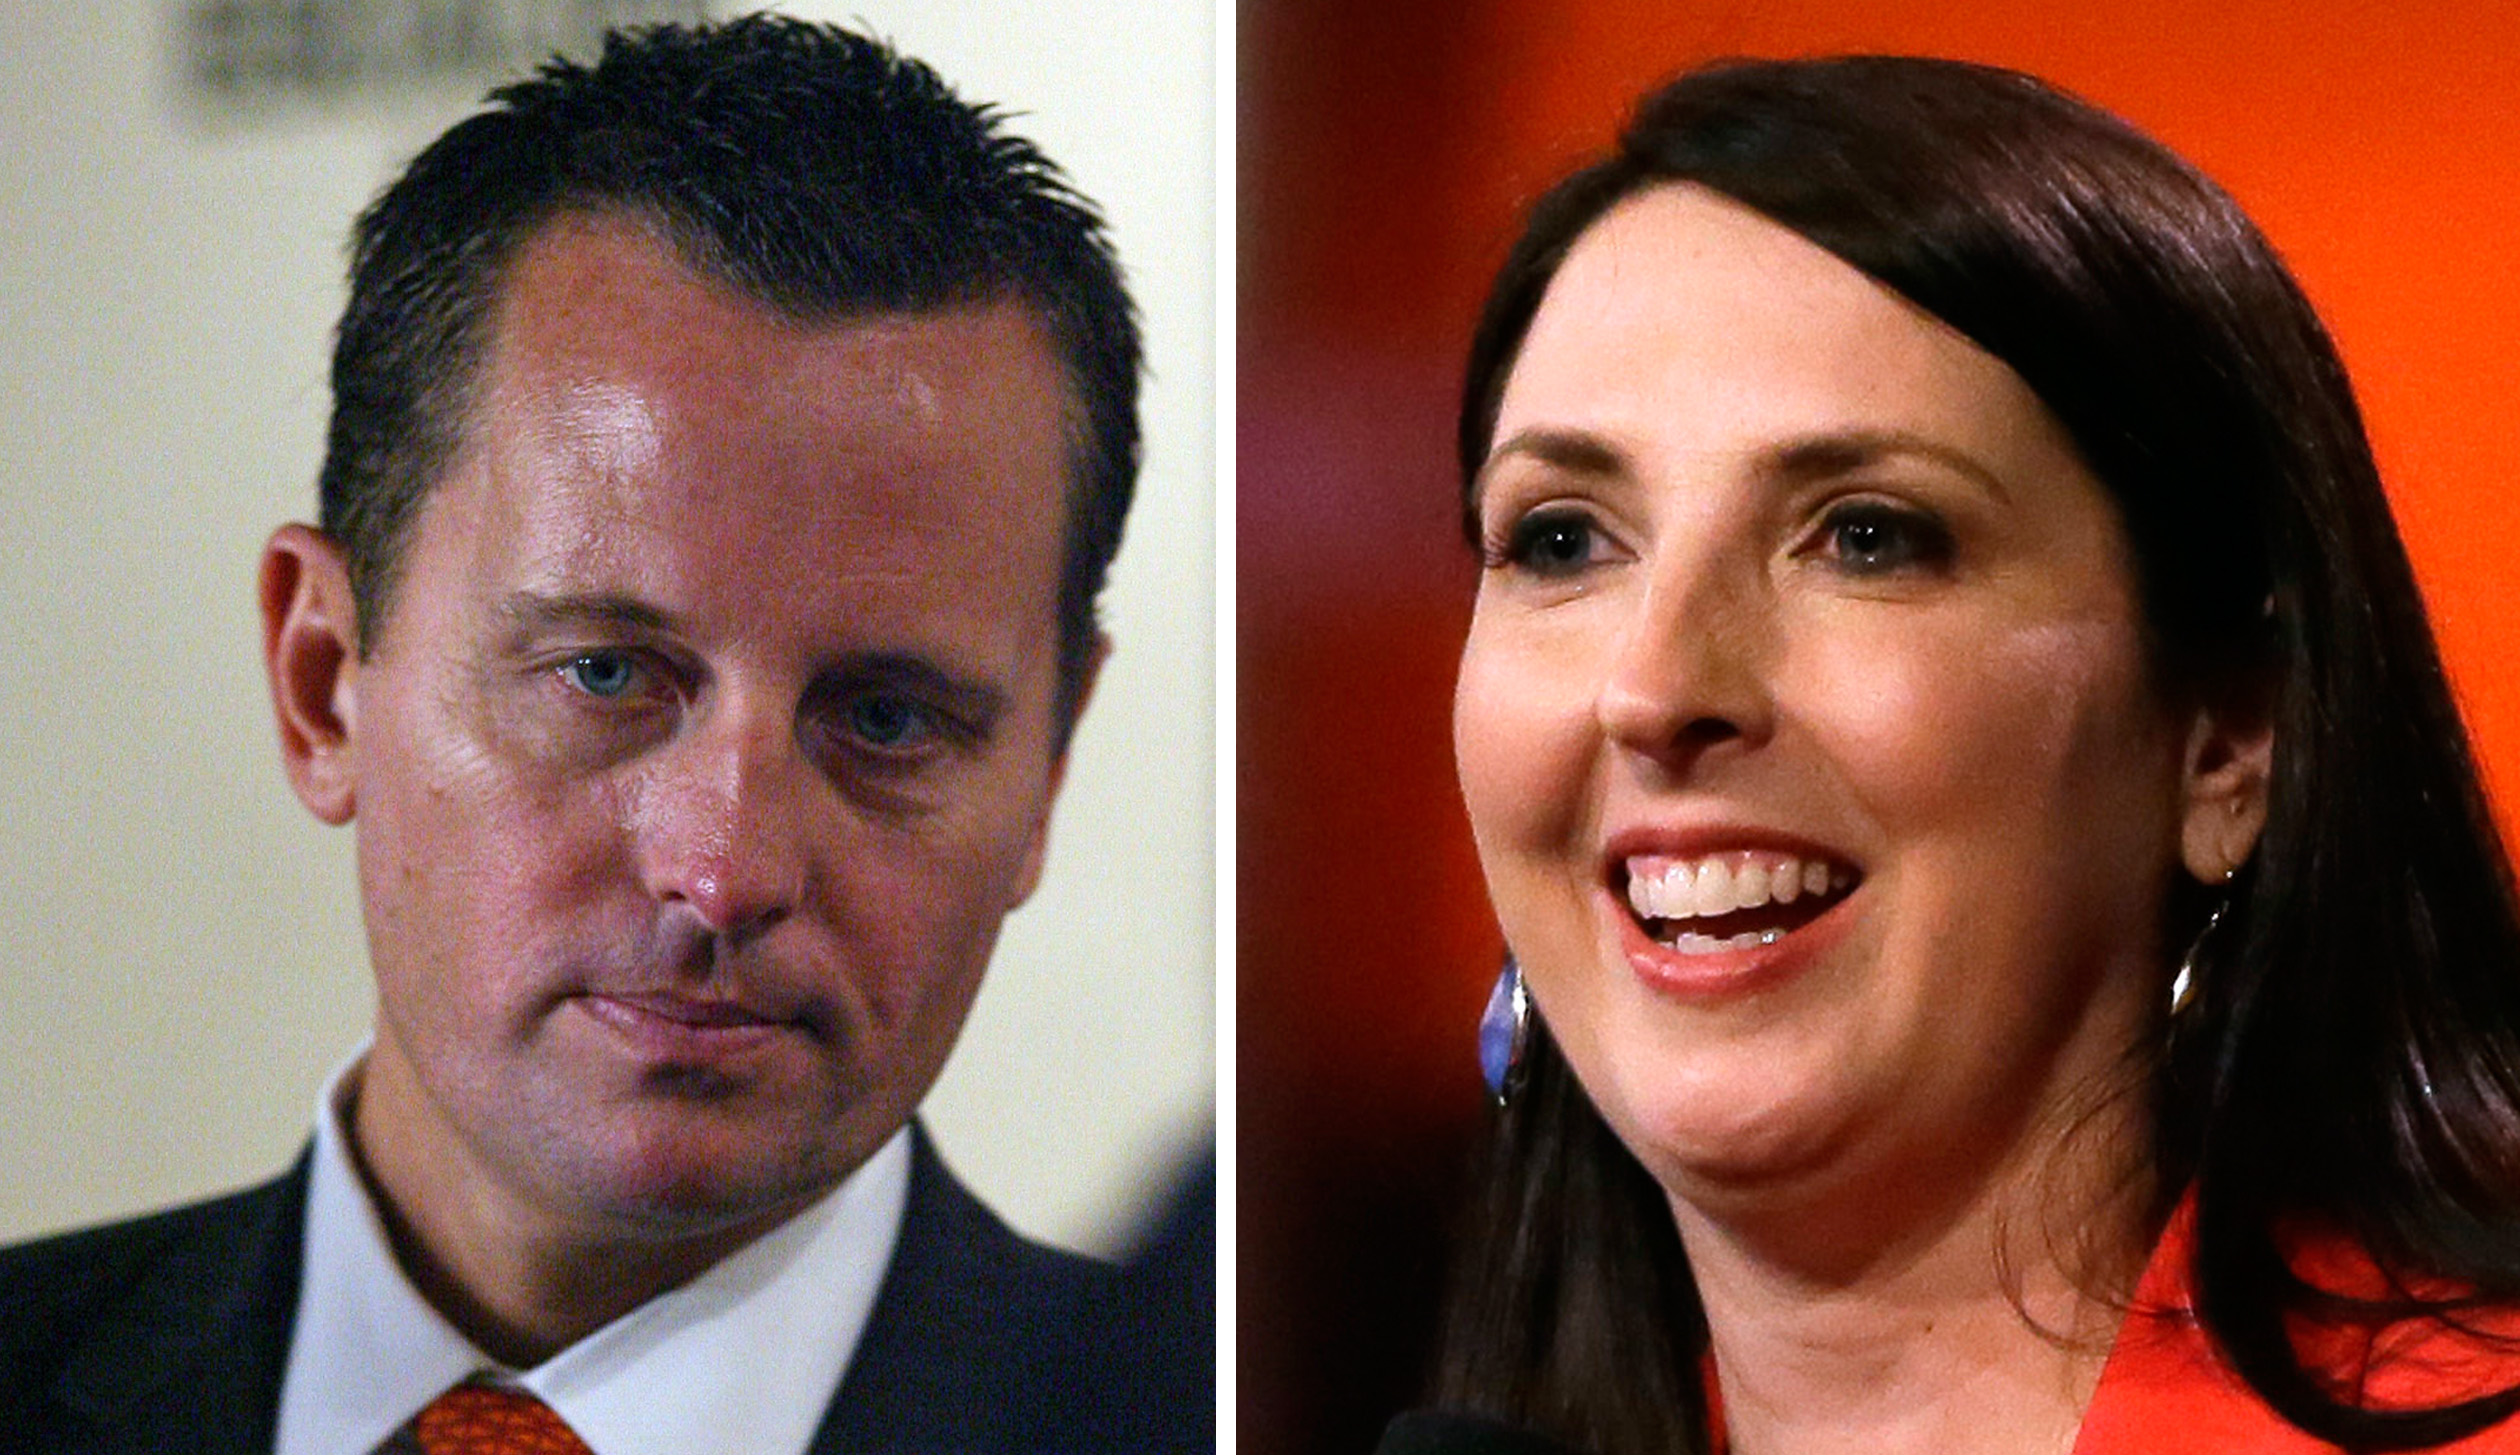 Richard Grenell and Ronna Romney McDaniel